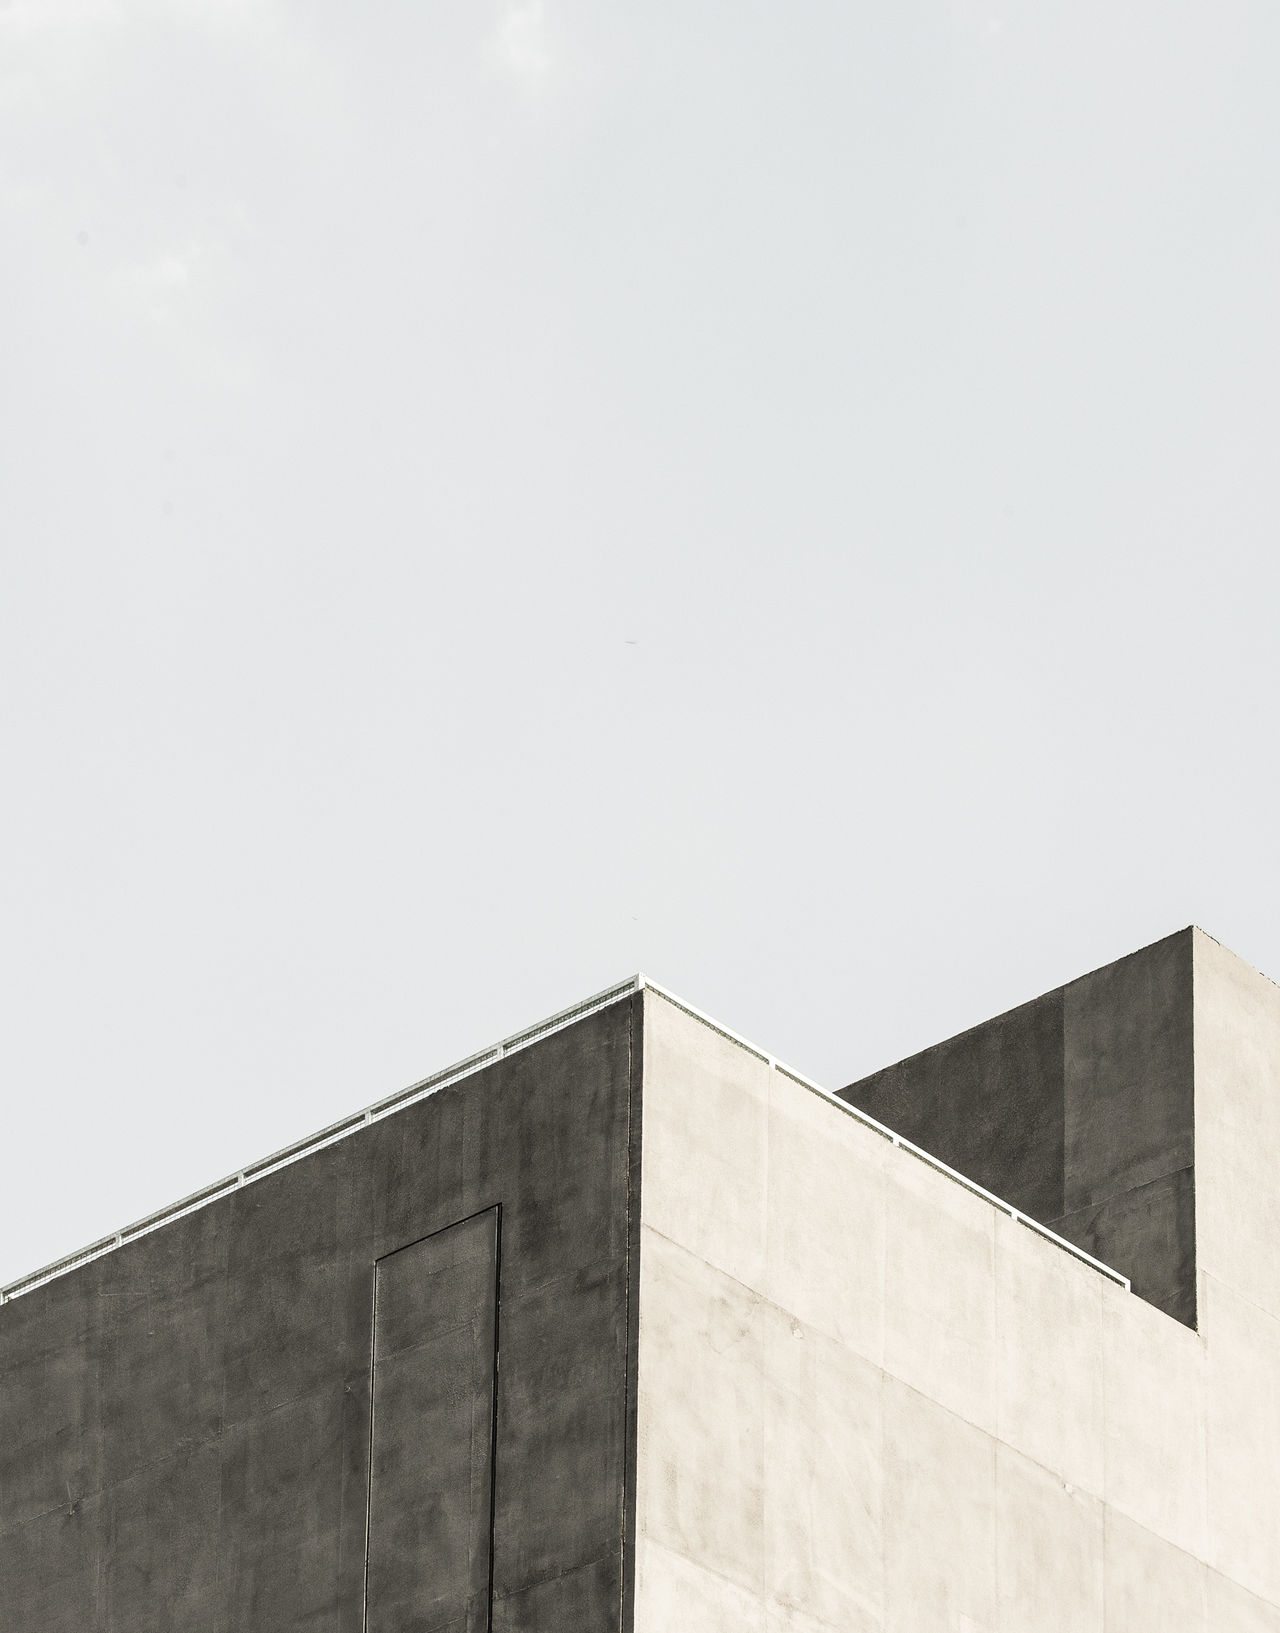 Minimal Architecture 20 beautifully simple minimalist architecture photos – eyeem blog